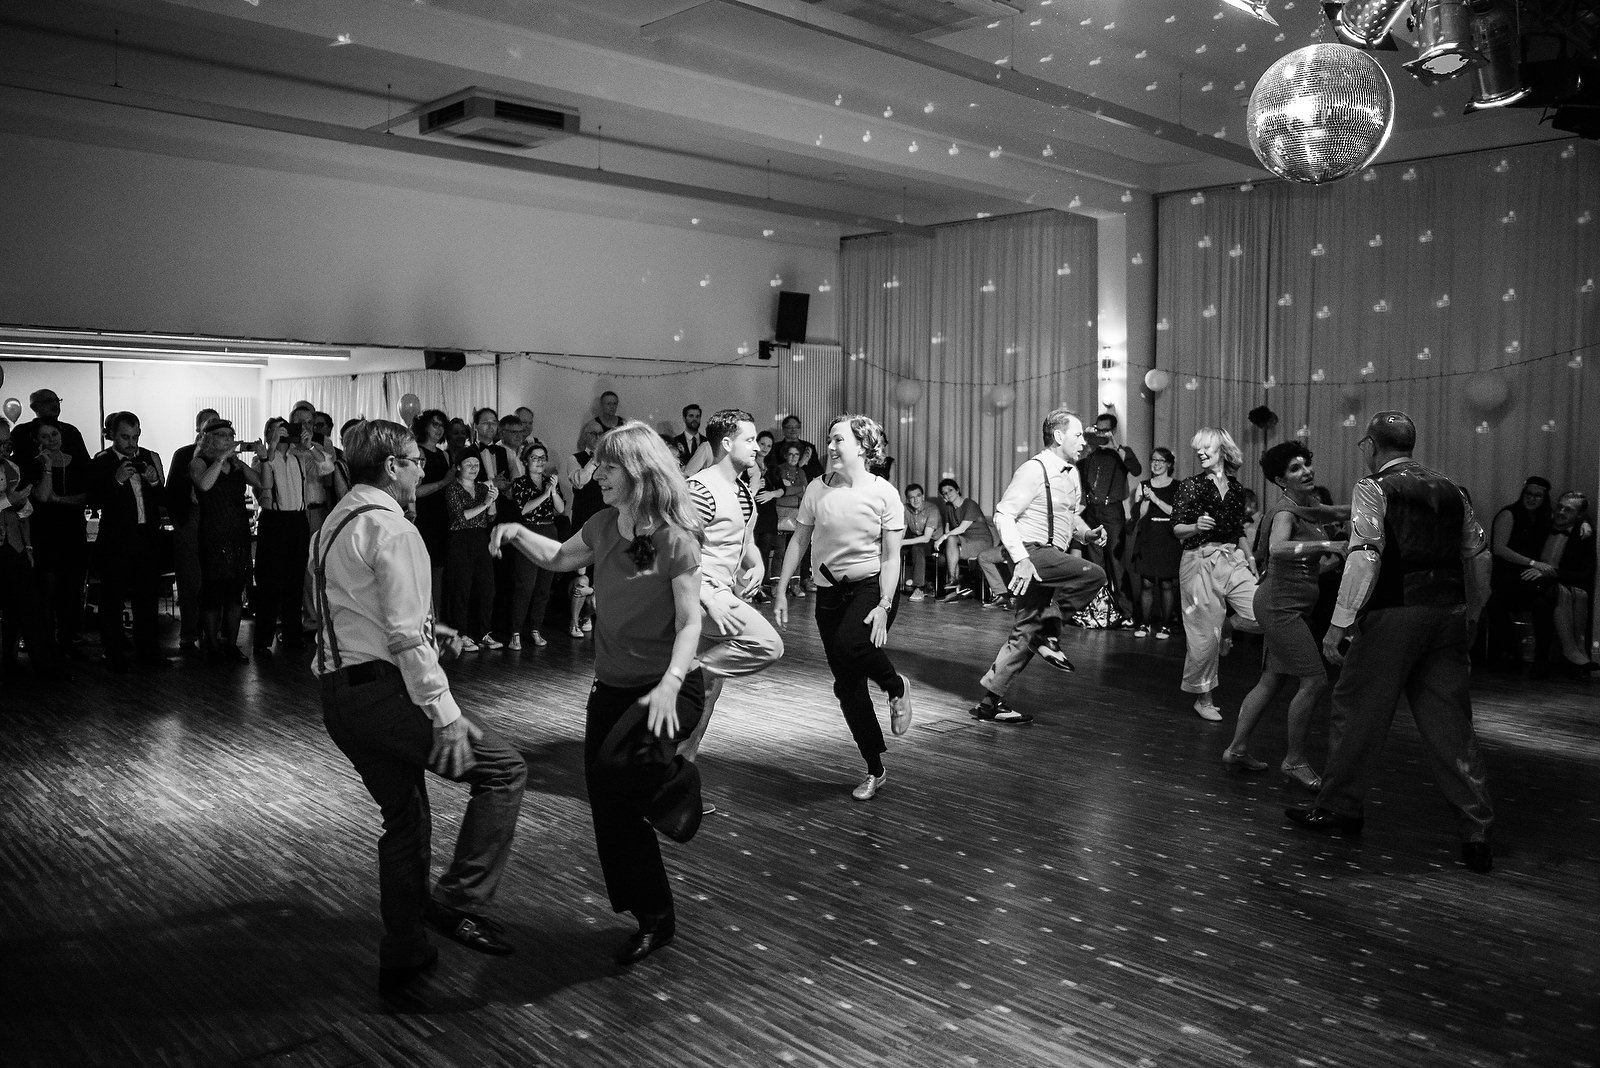 Fotograf Konstanz - Lindy Hop Swing Silvester Party Fotograf Konstanz EFP 01 - Lindy-Hop Swing New Year's Eve Party  - 3 -